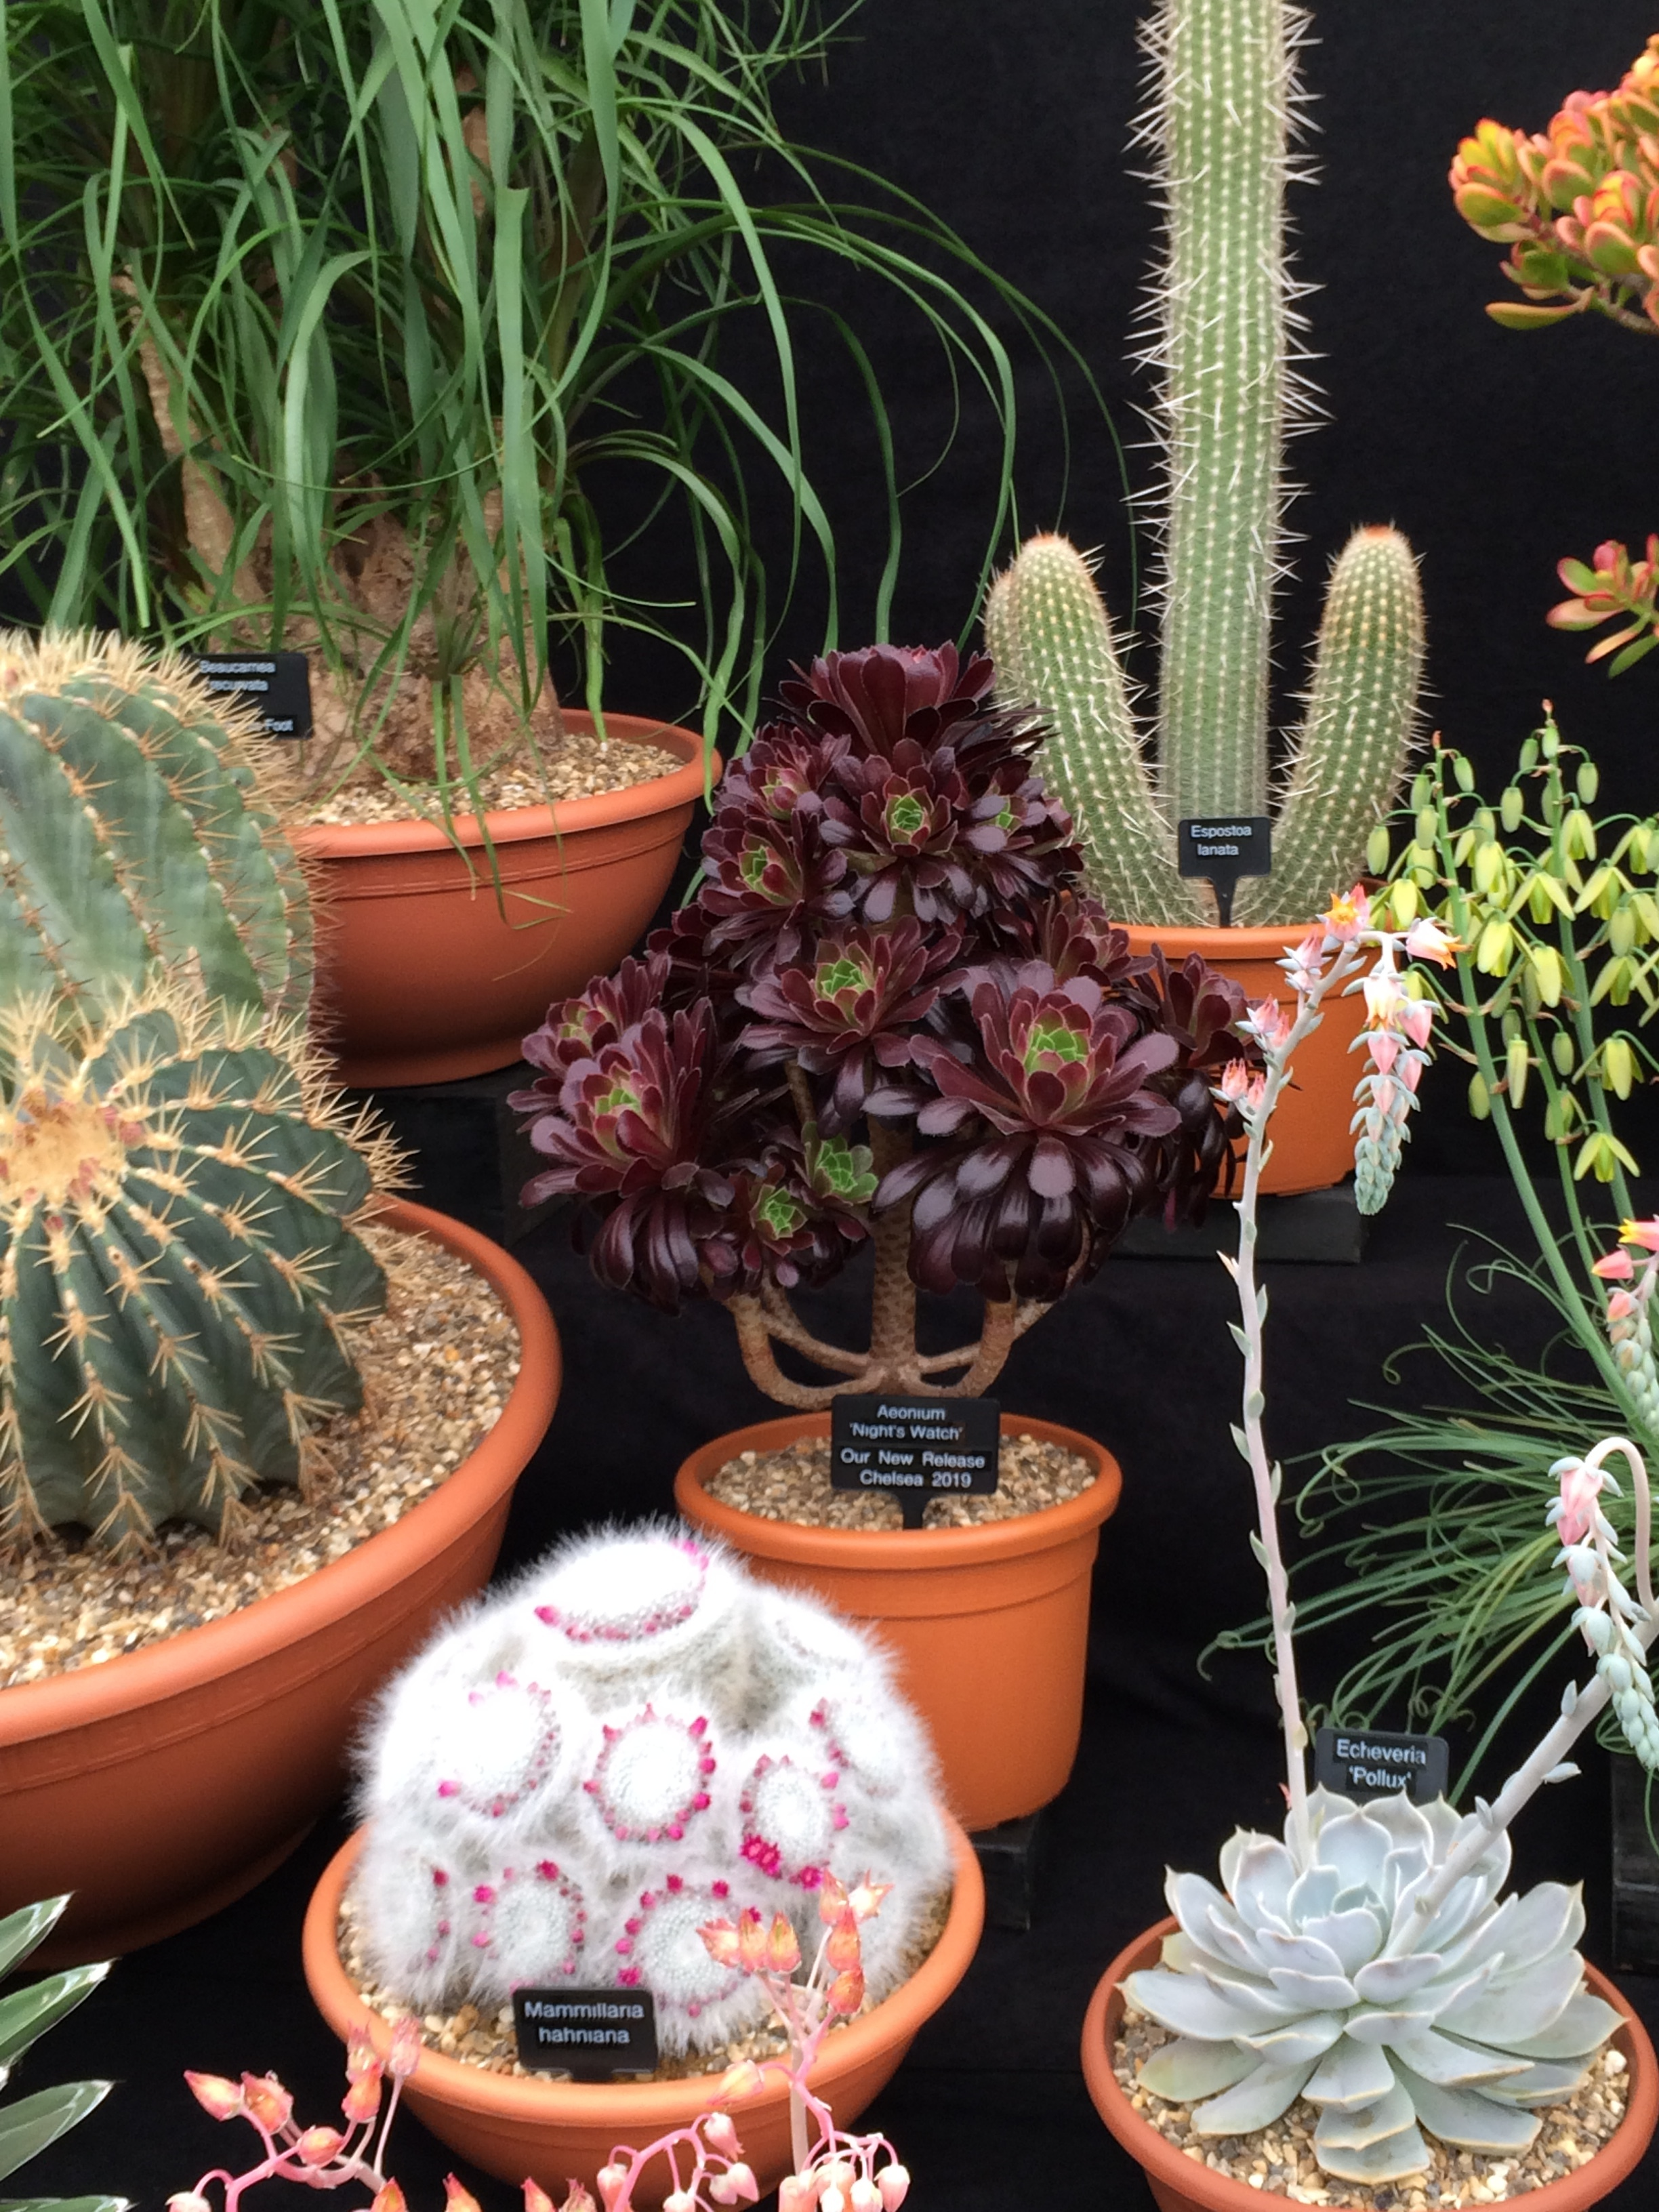 Aeonium 'Night's Watch' on the Ottershaw Cacti stand